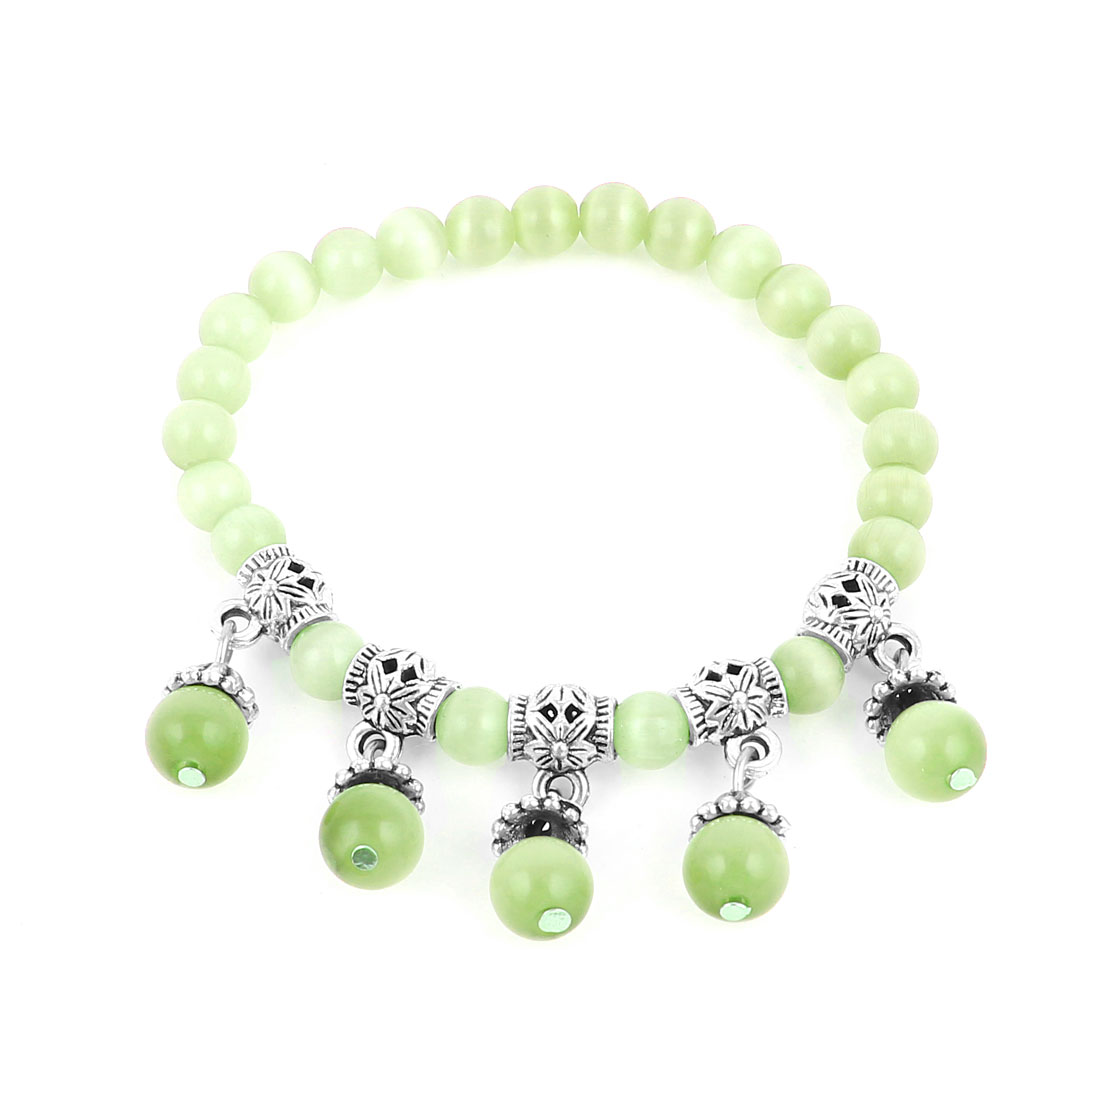 Lady Manmade Faceted Opal Bead Light Green Silver Tone Decor Stretchy Bracelet